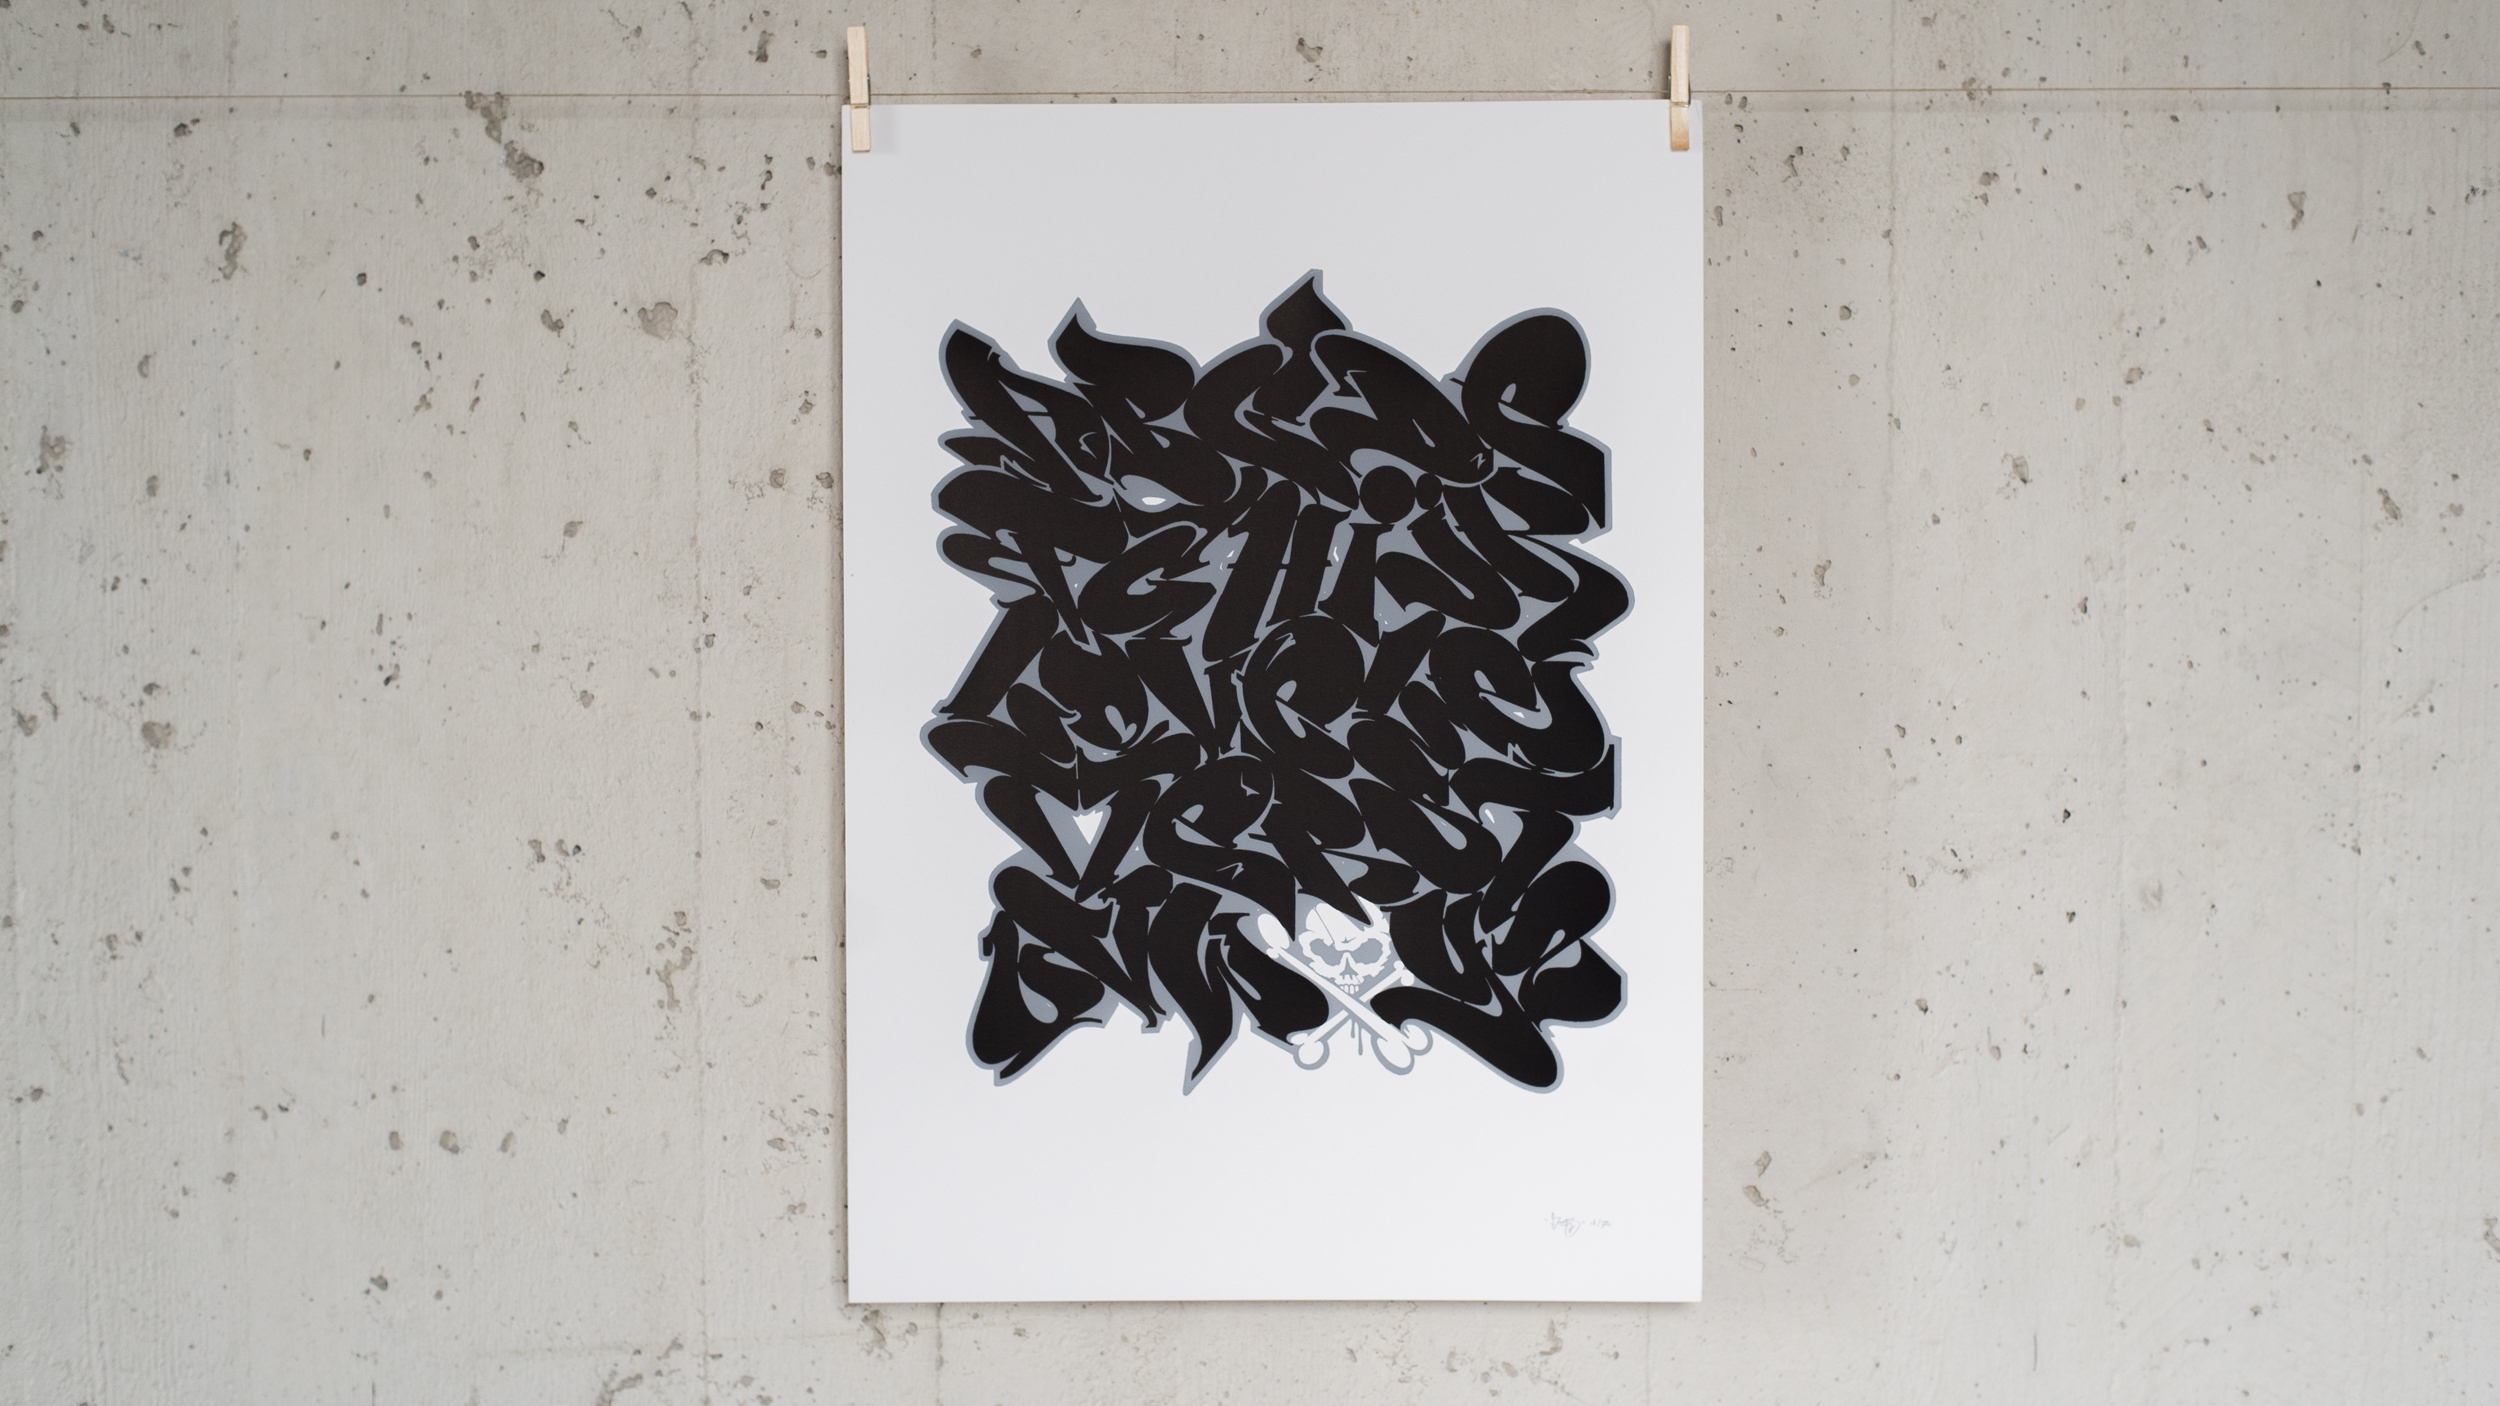 A work by Does - Print alphabet black